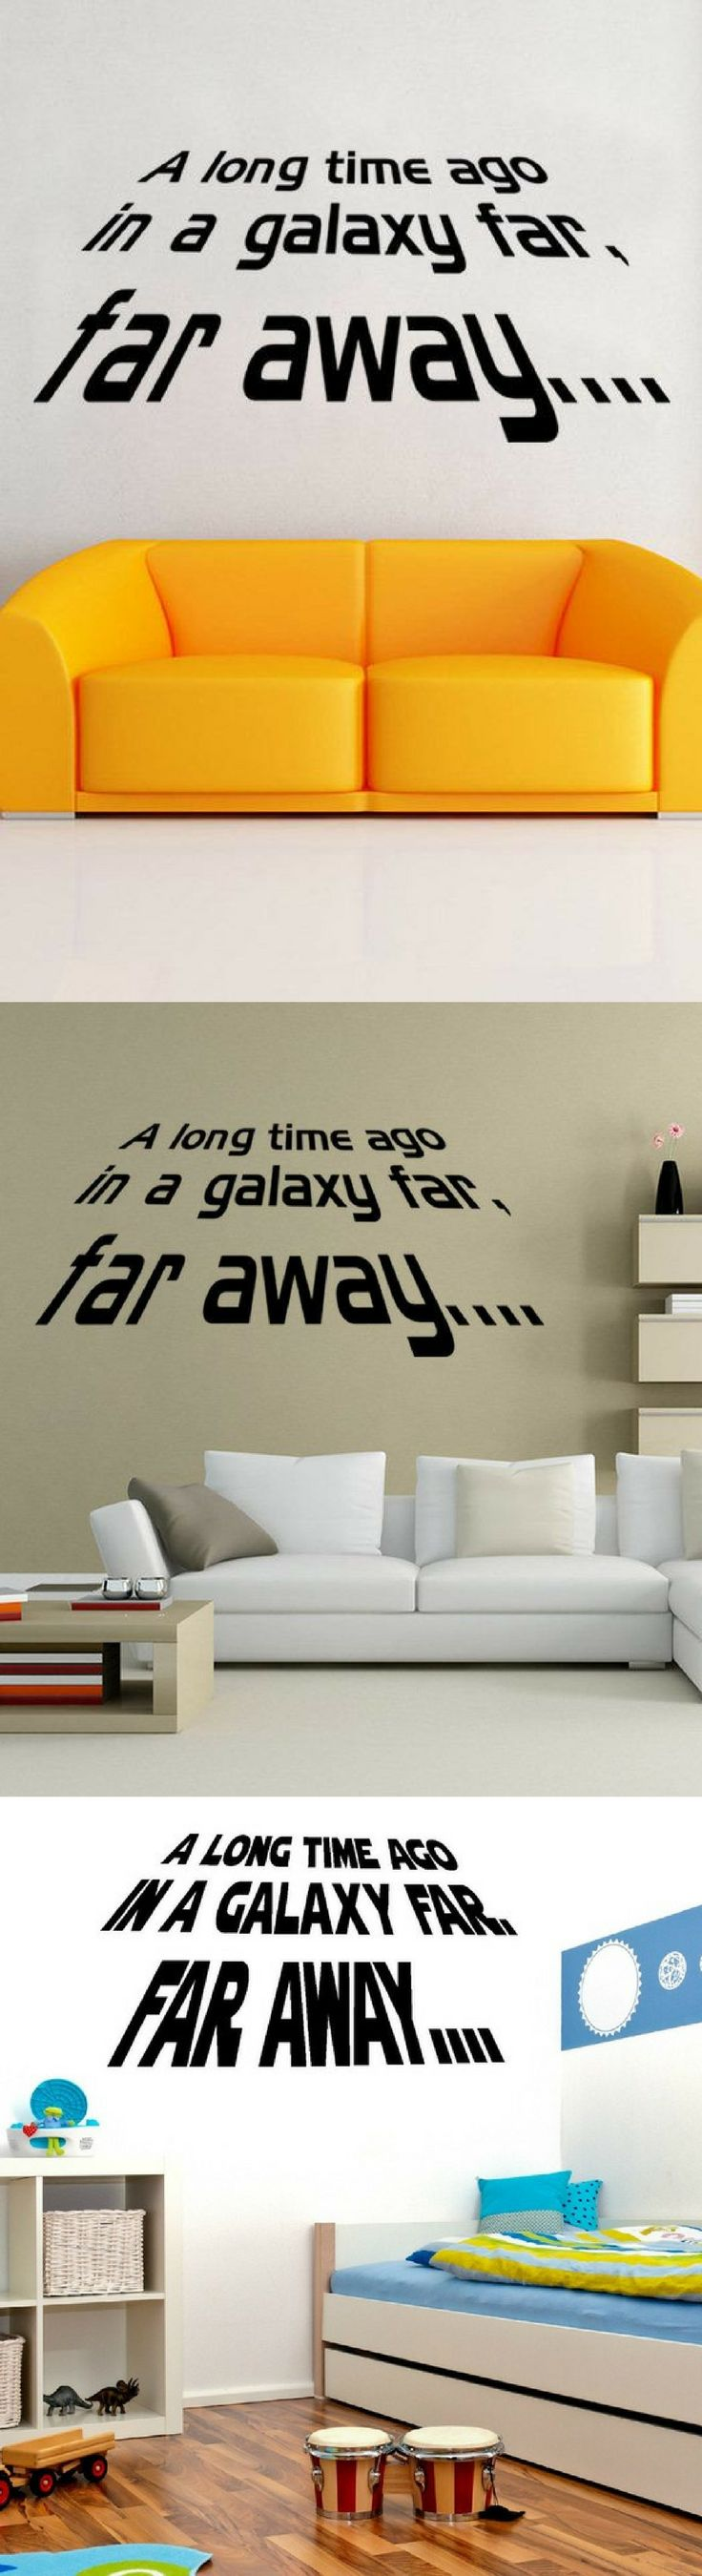 Star Wars Long Time Ago Wall Decals - Star Wars Gifts #starwars #decal #homedecor #wallstickers